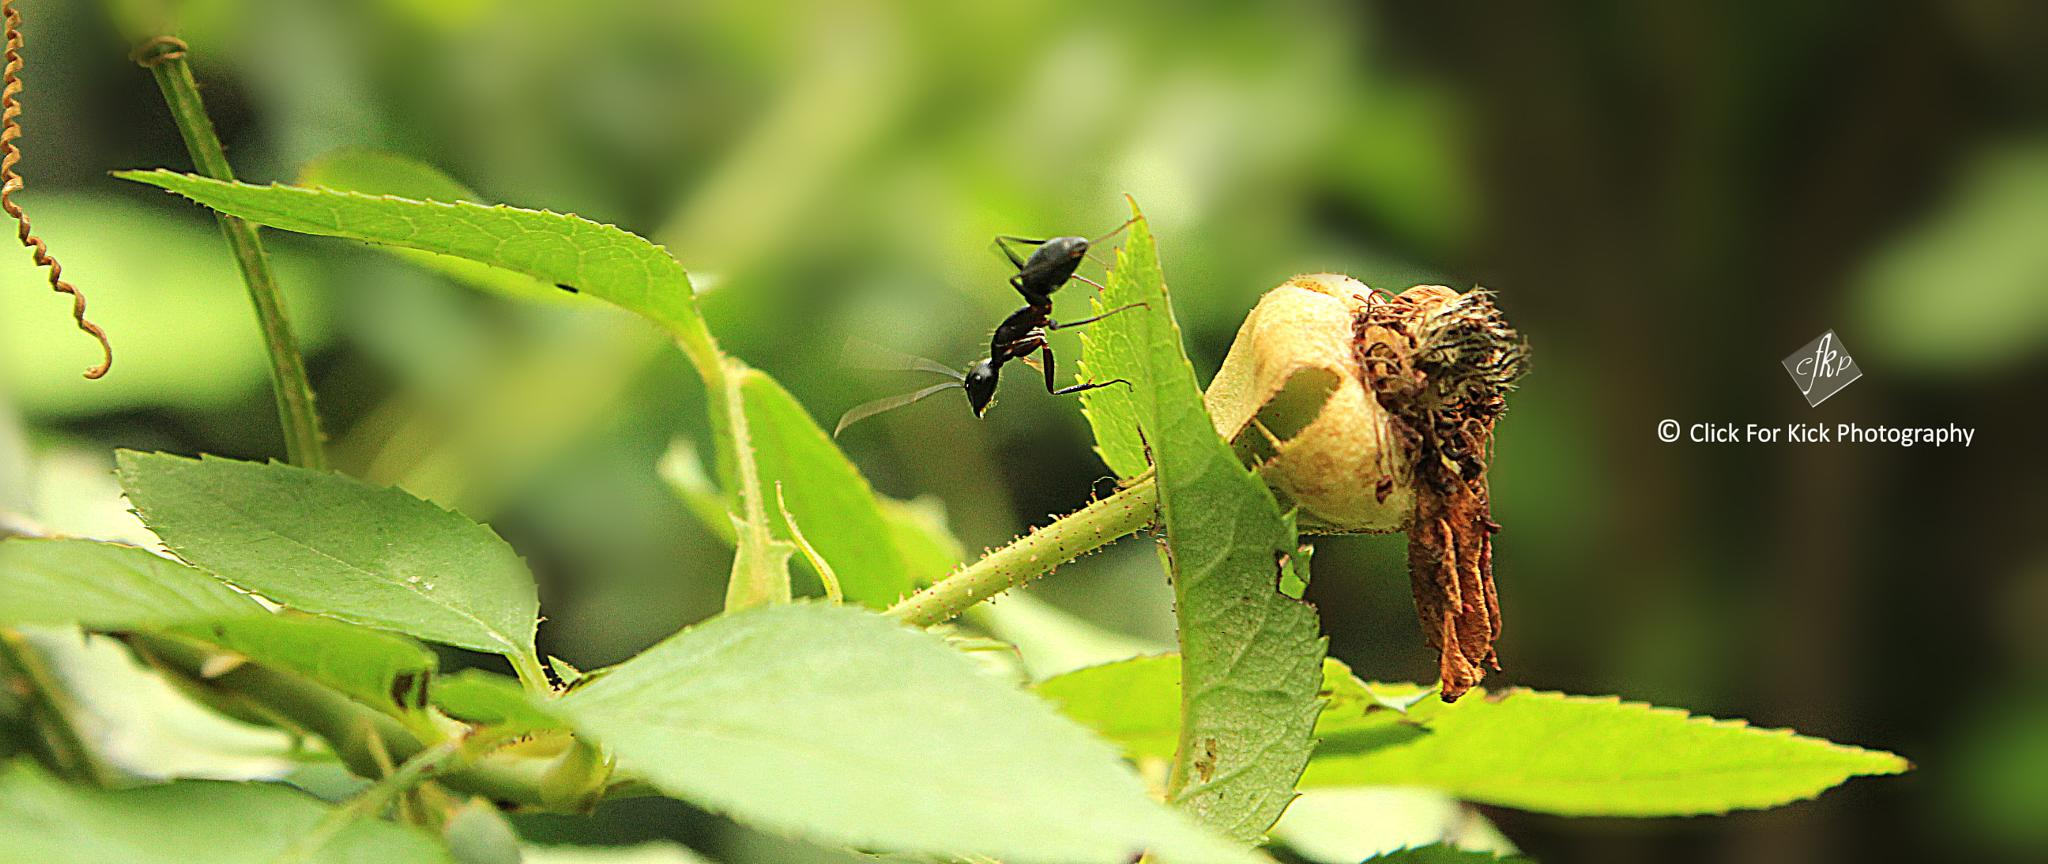 Black Emmett On Rose Leaf. by kaushiksrivastav